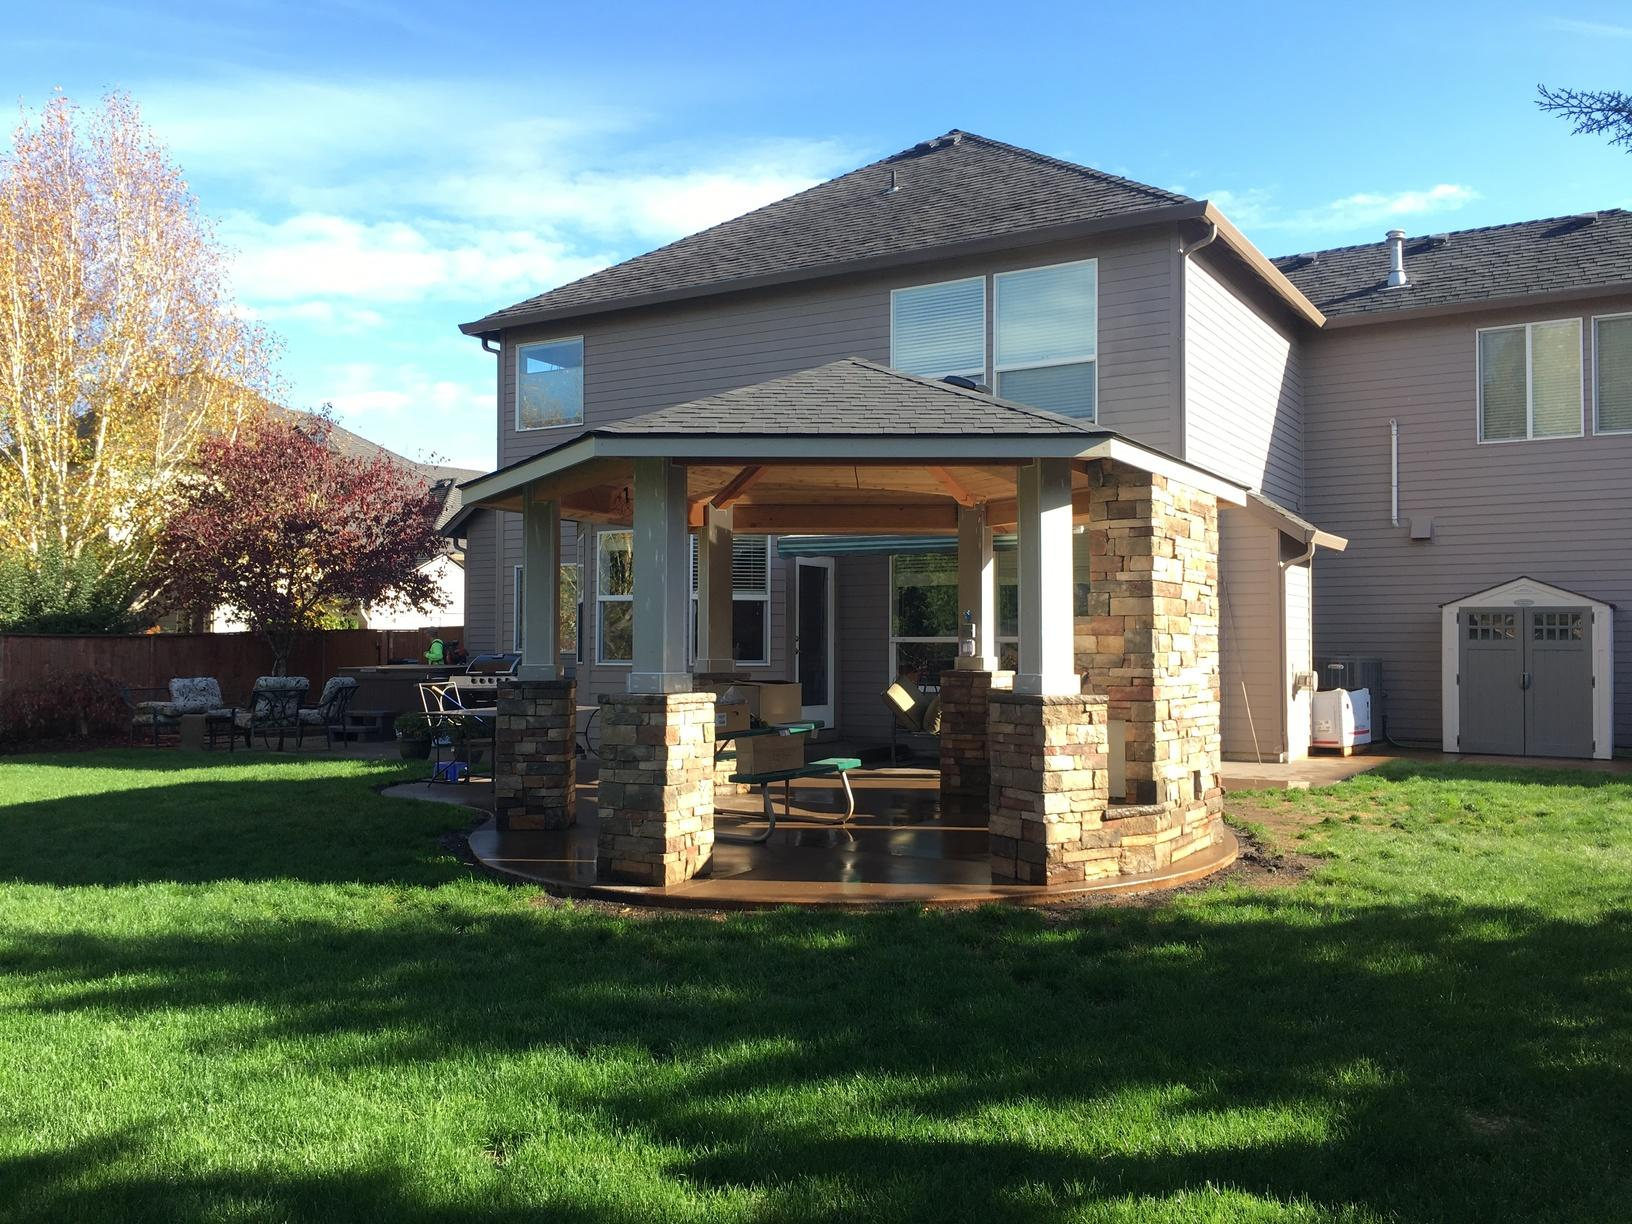 Home in Vancouver, Washington gets a six sided stand alone patio cover with gas fire place